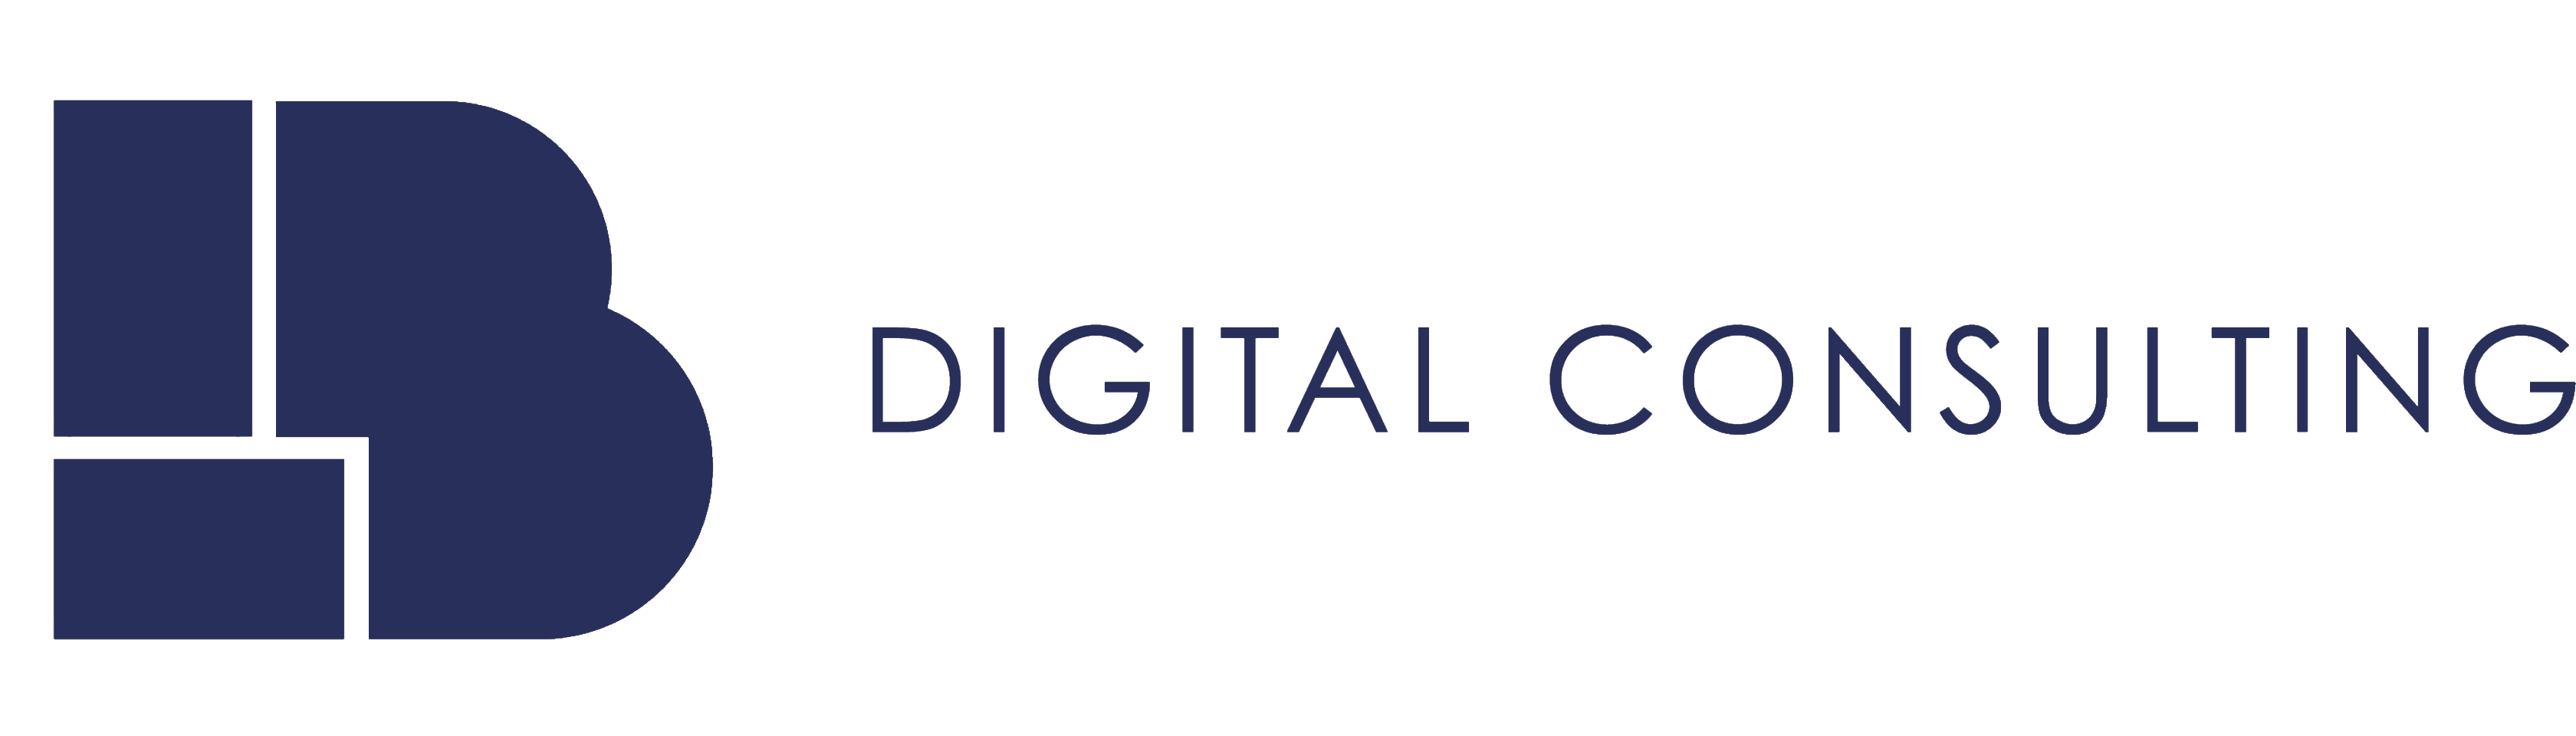 LB Digital Consulting